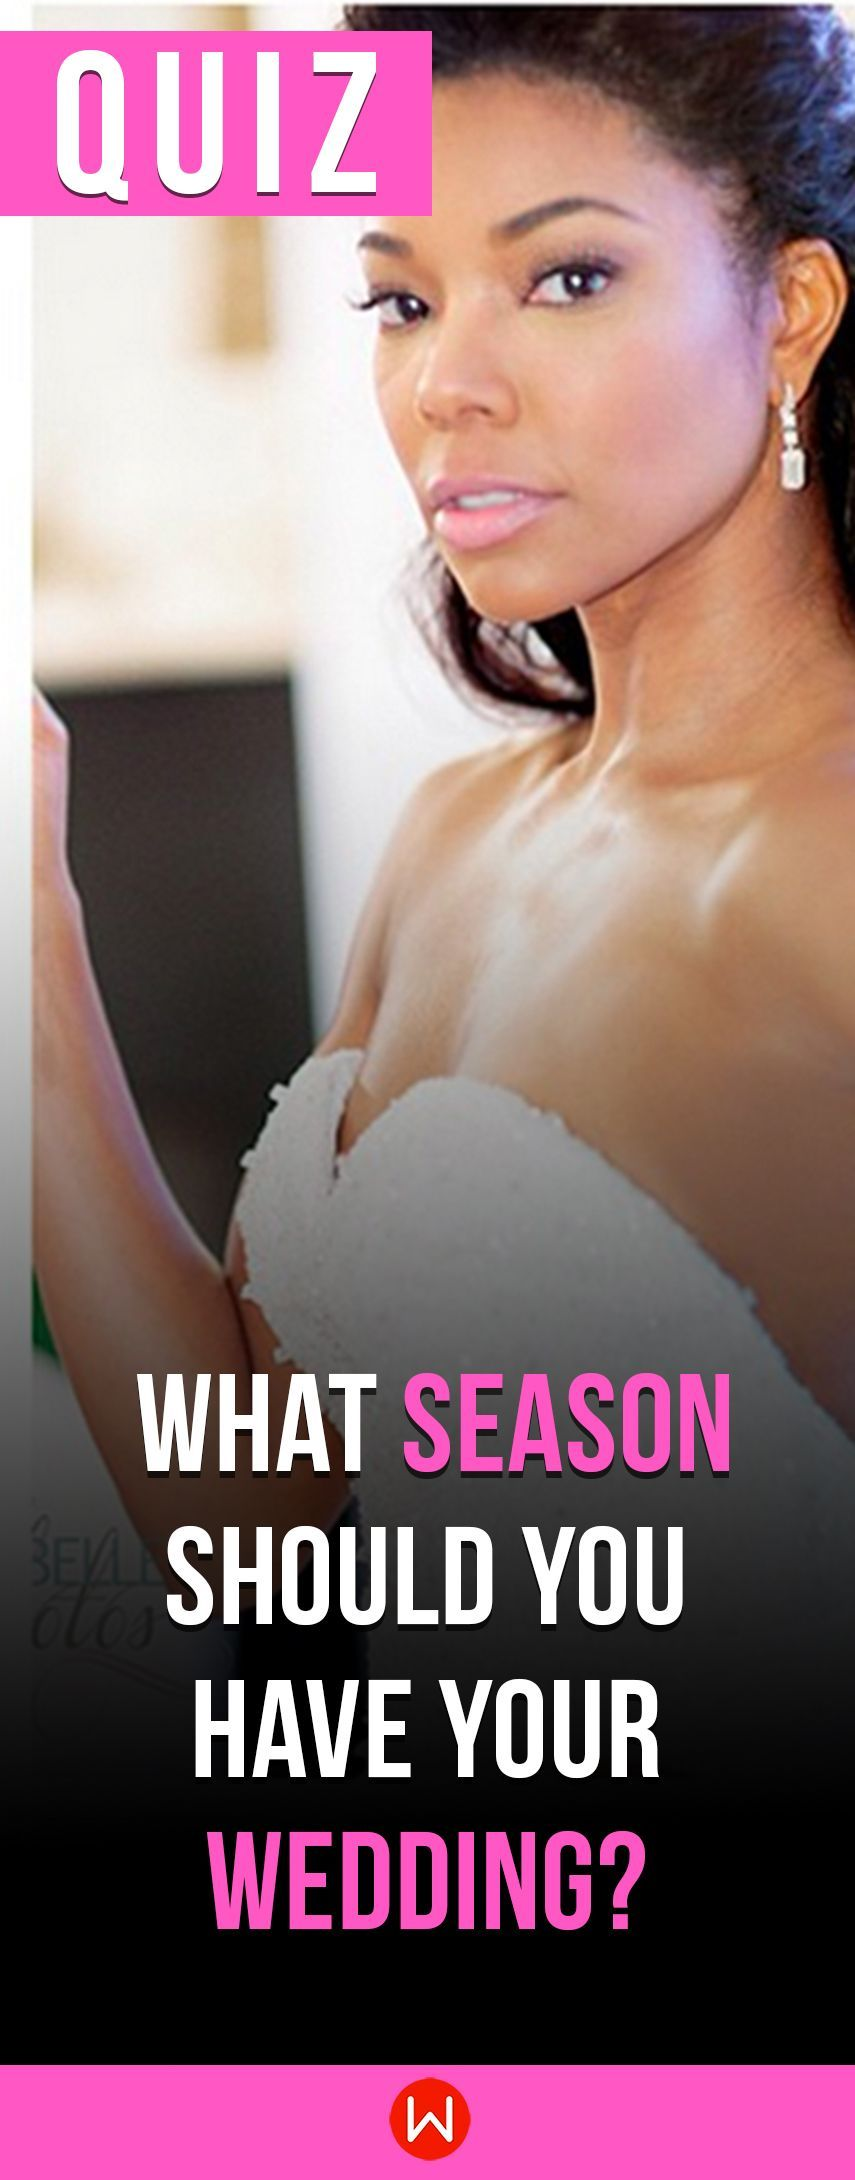 Quiz: What Season Should You Have Your Wedding? in 2020